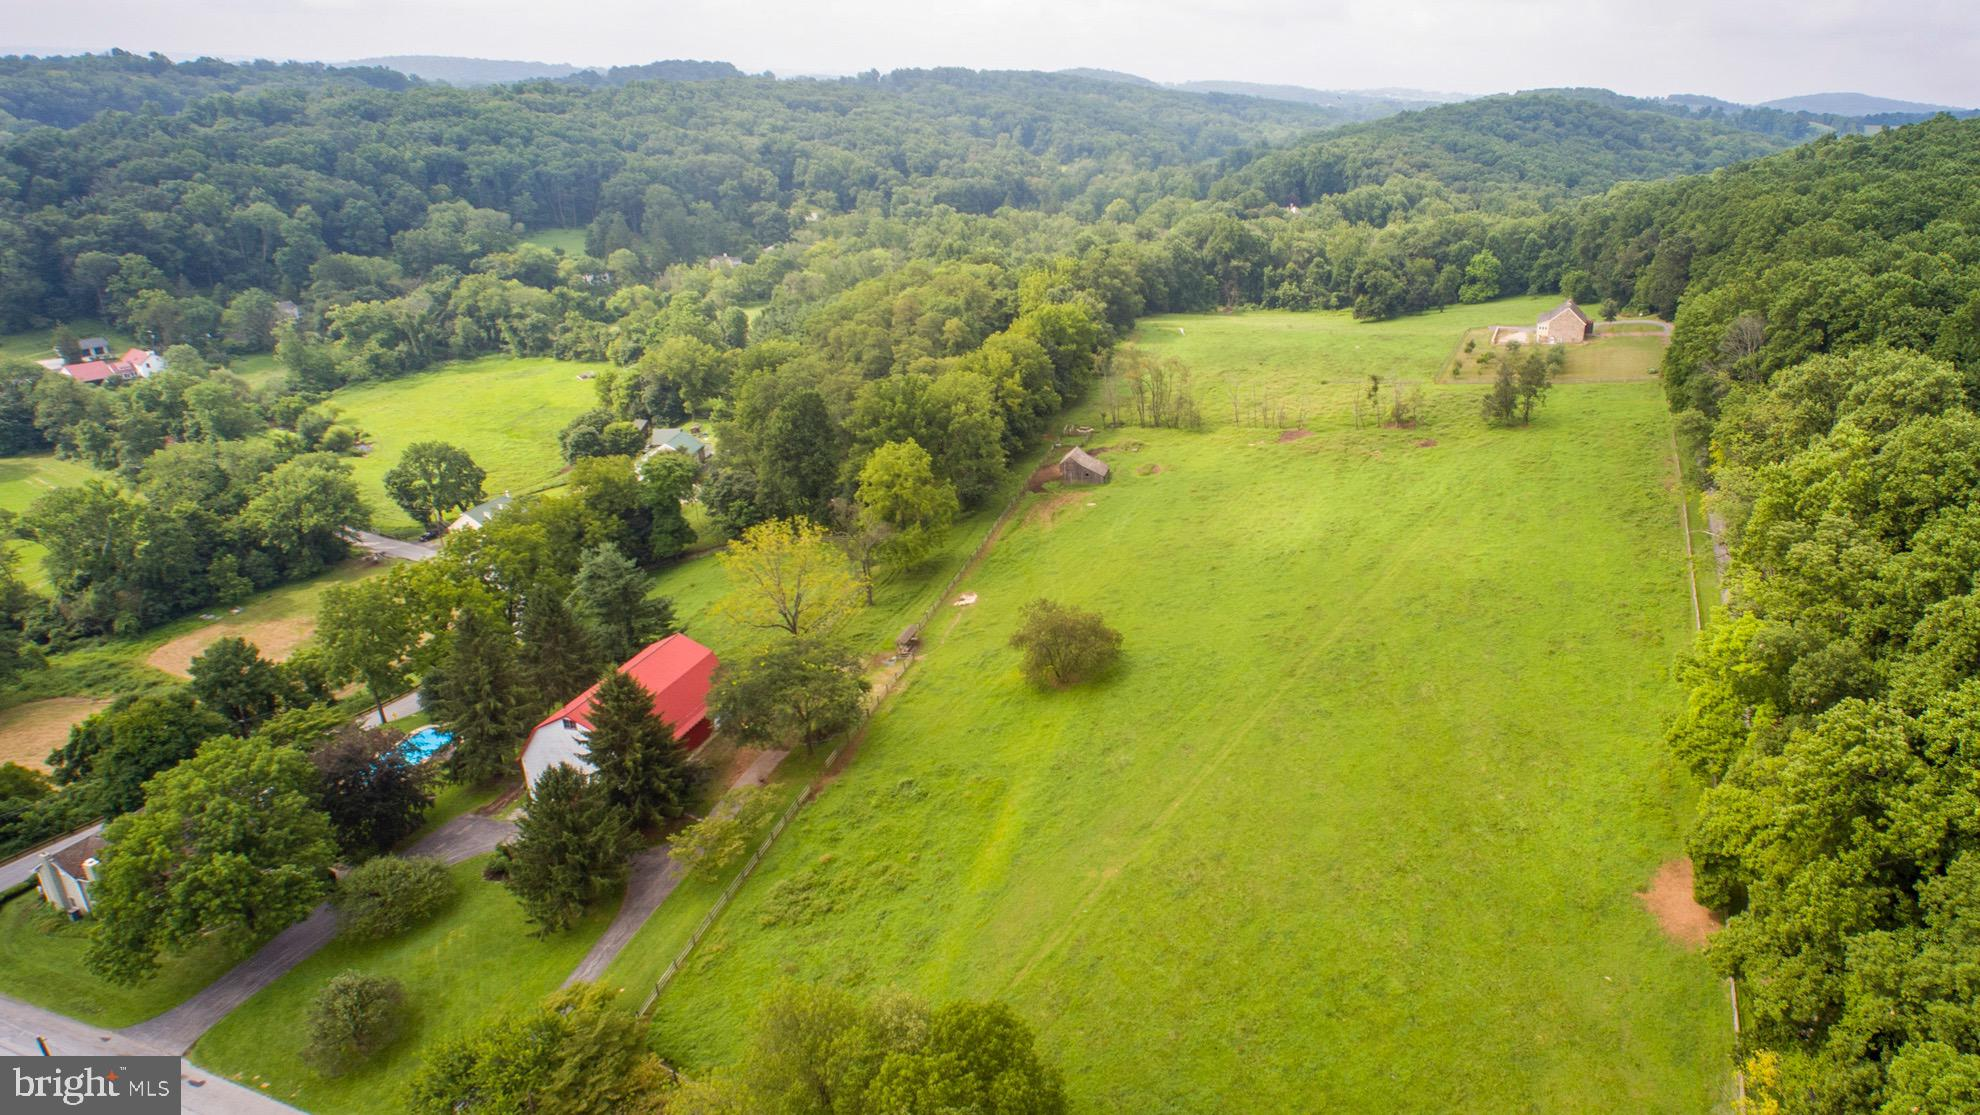 2358 FLOWING SPRINGS ROAD, SPRING CITY, PA 19475